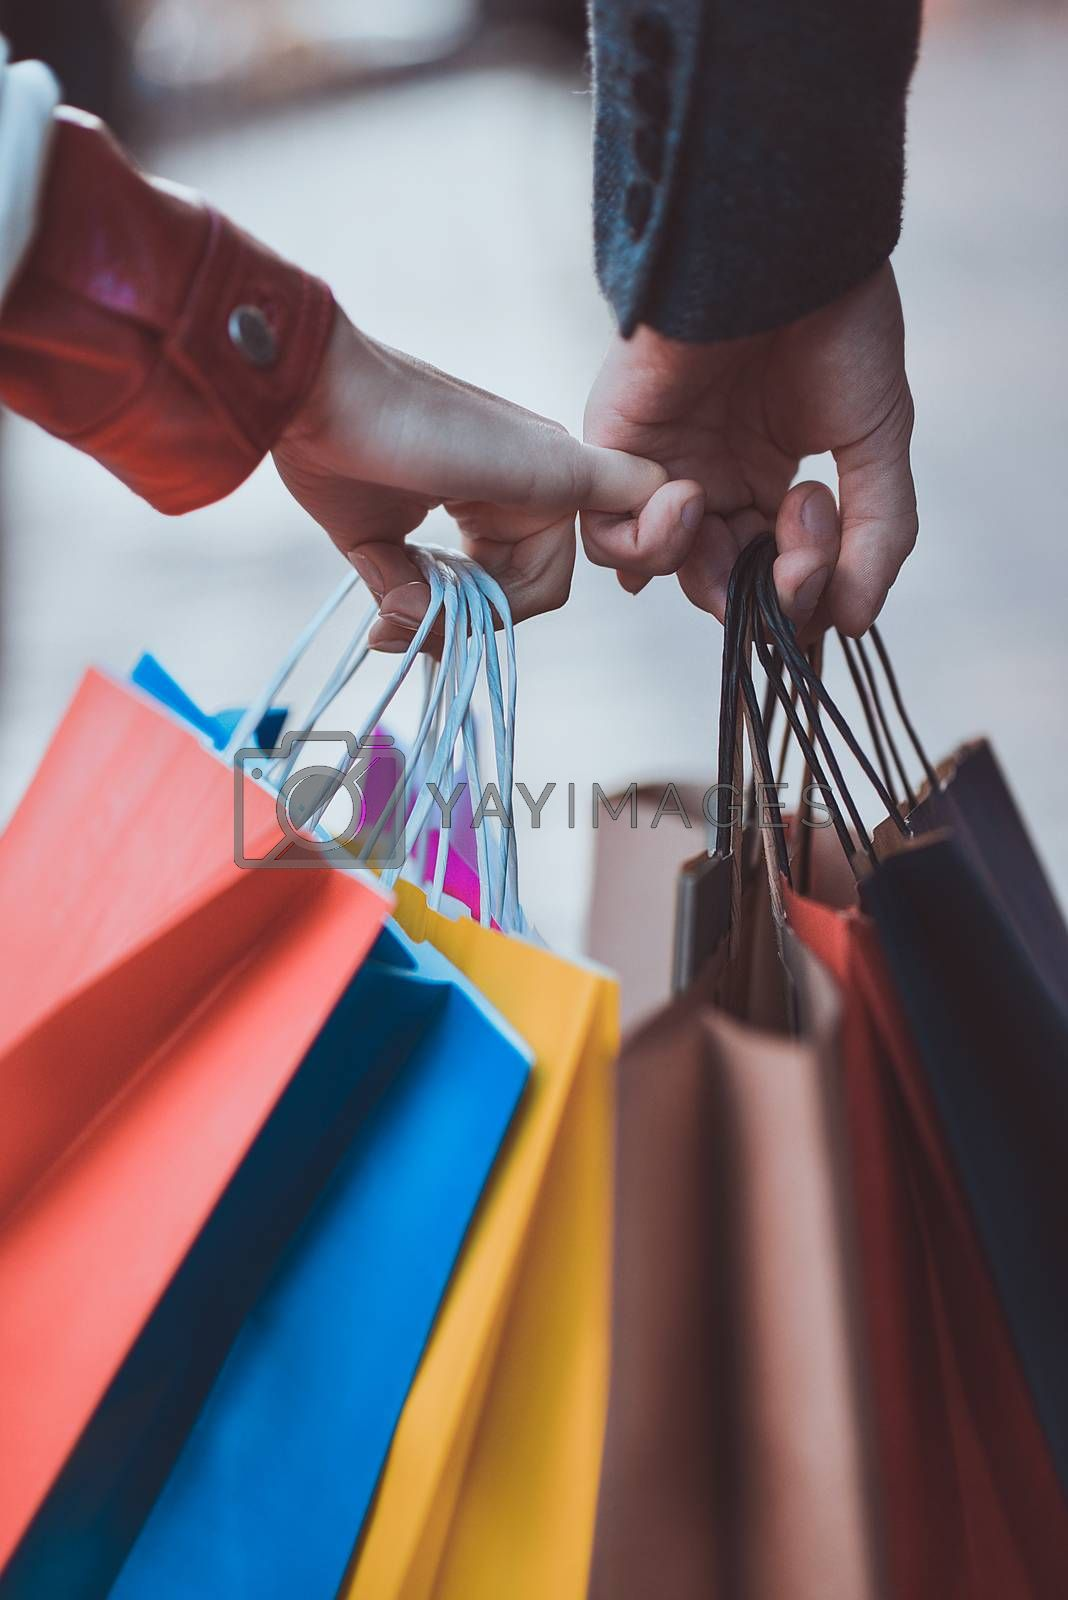 Colorful paper bags in hands of couple. Shopping and sales concept.